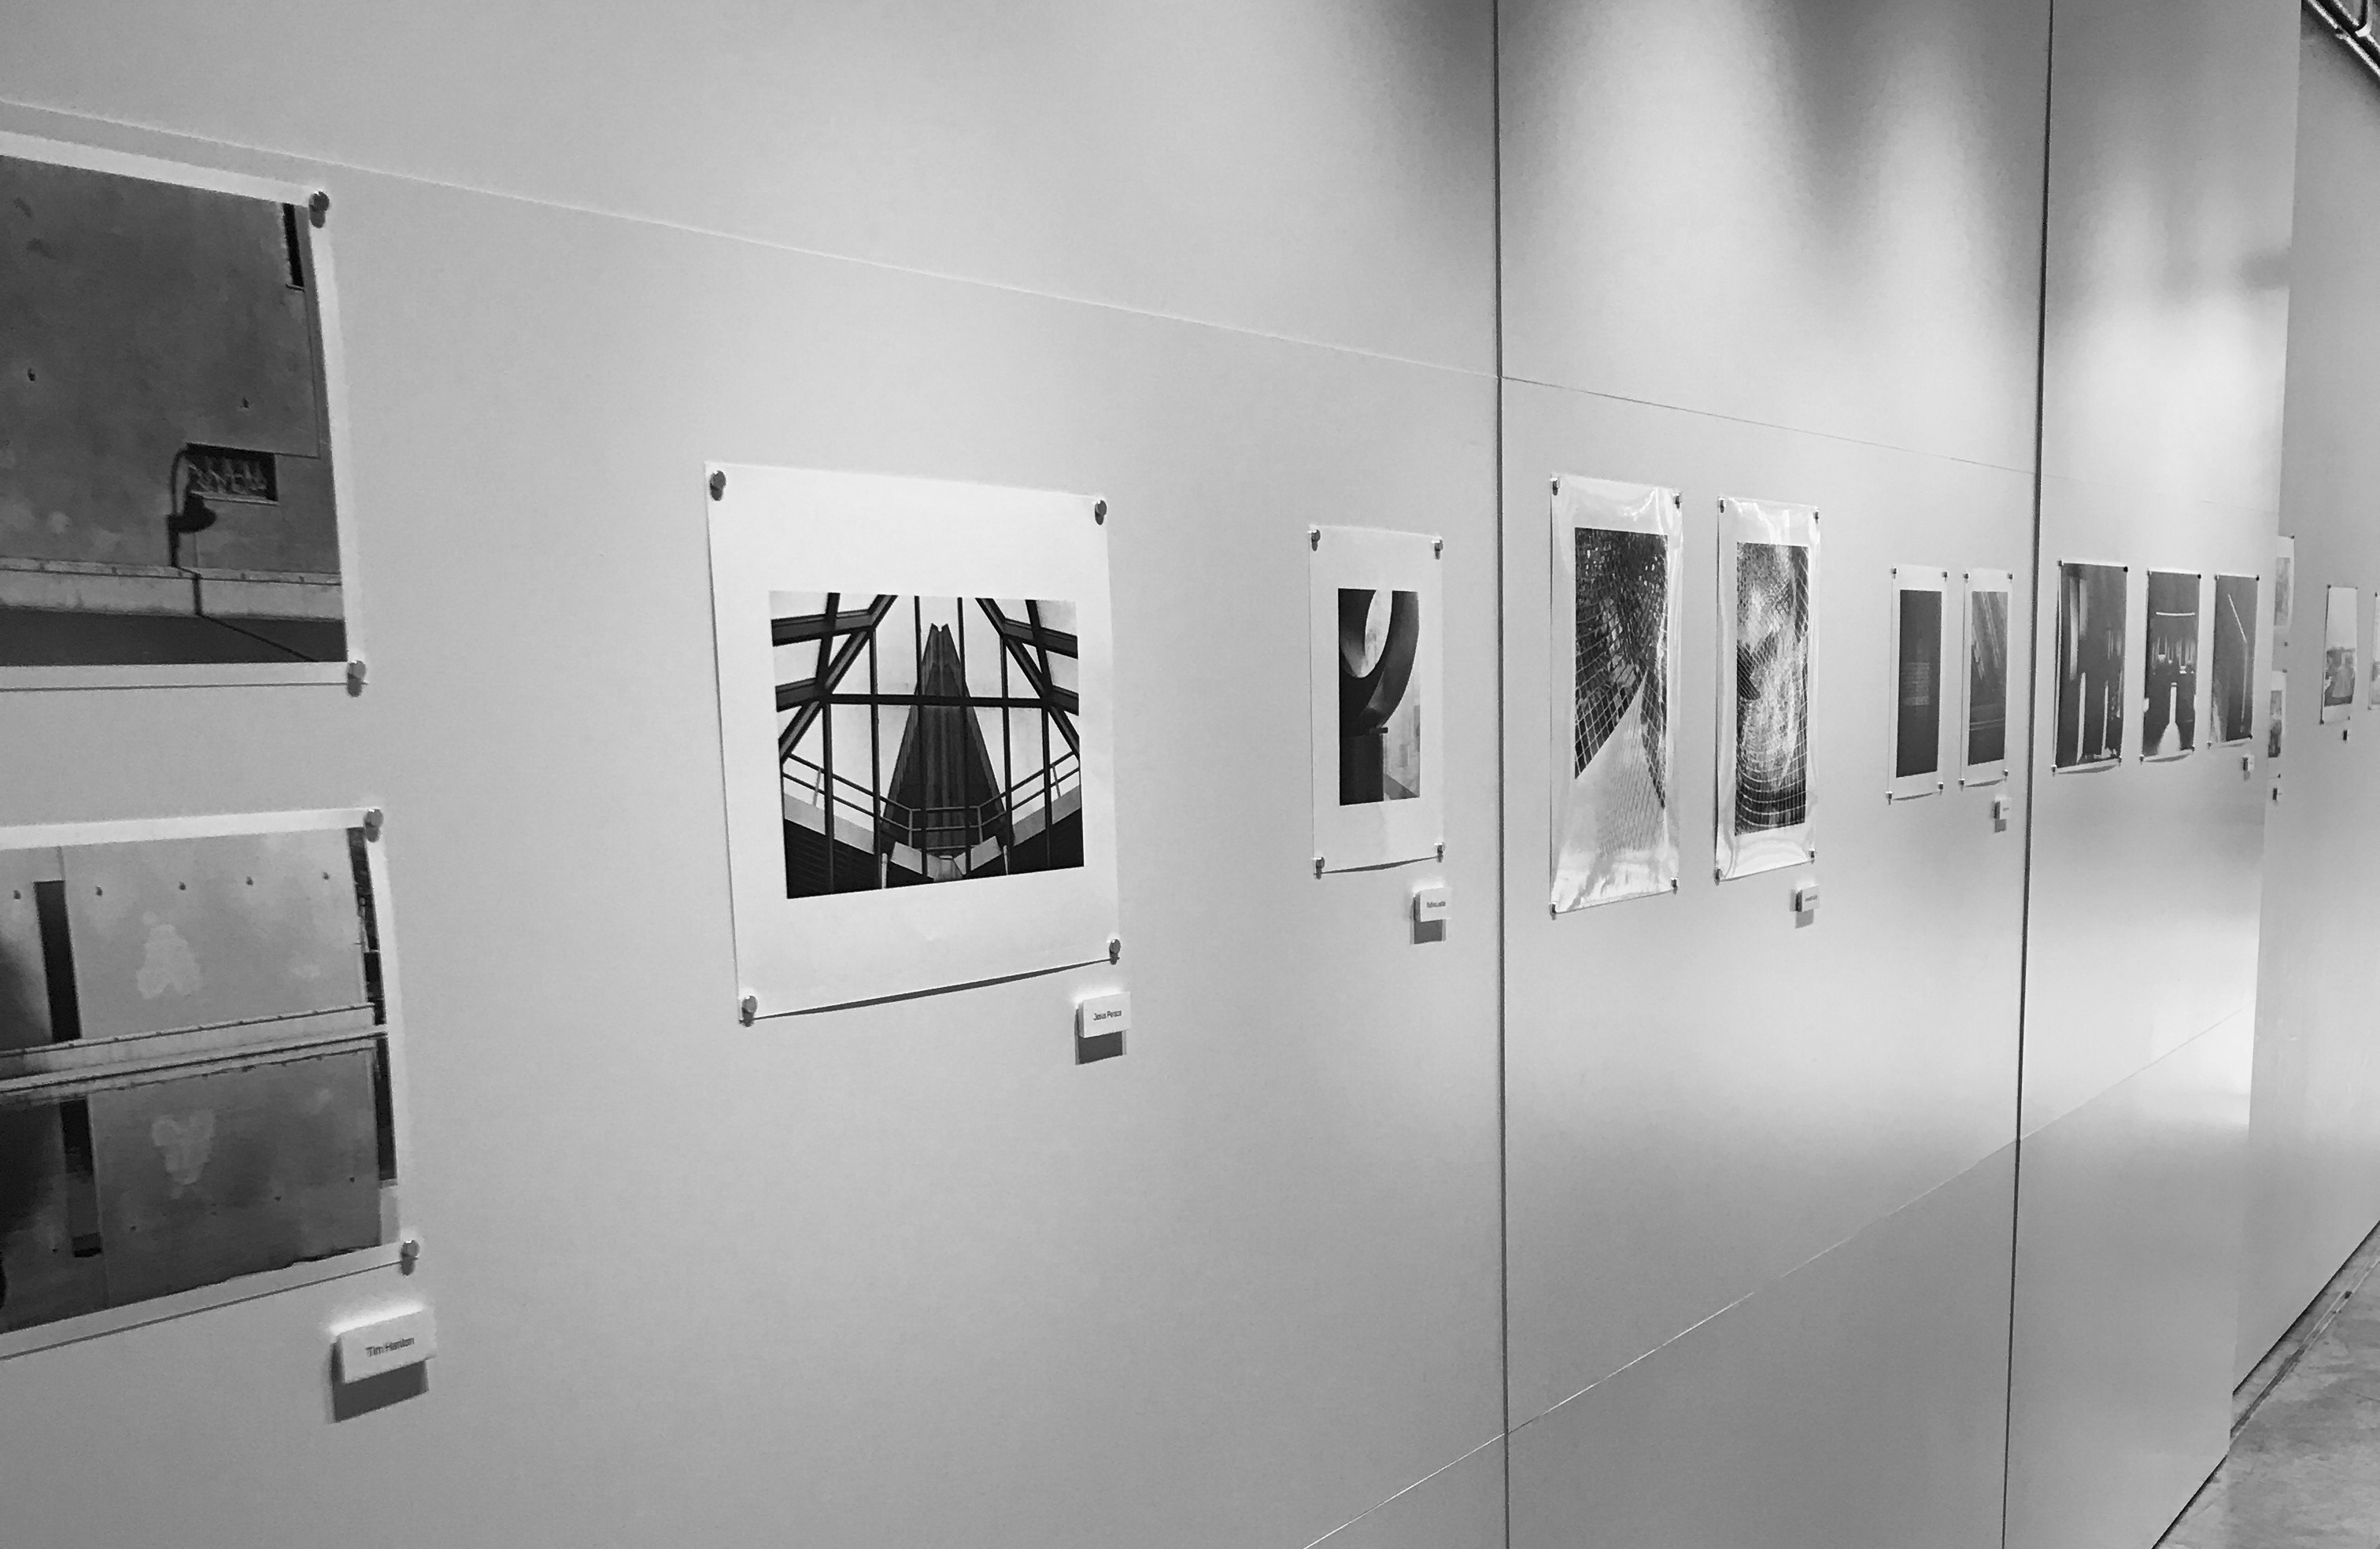 Details from the Space and Structure Exhibition